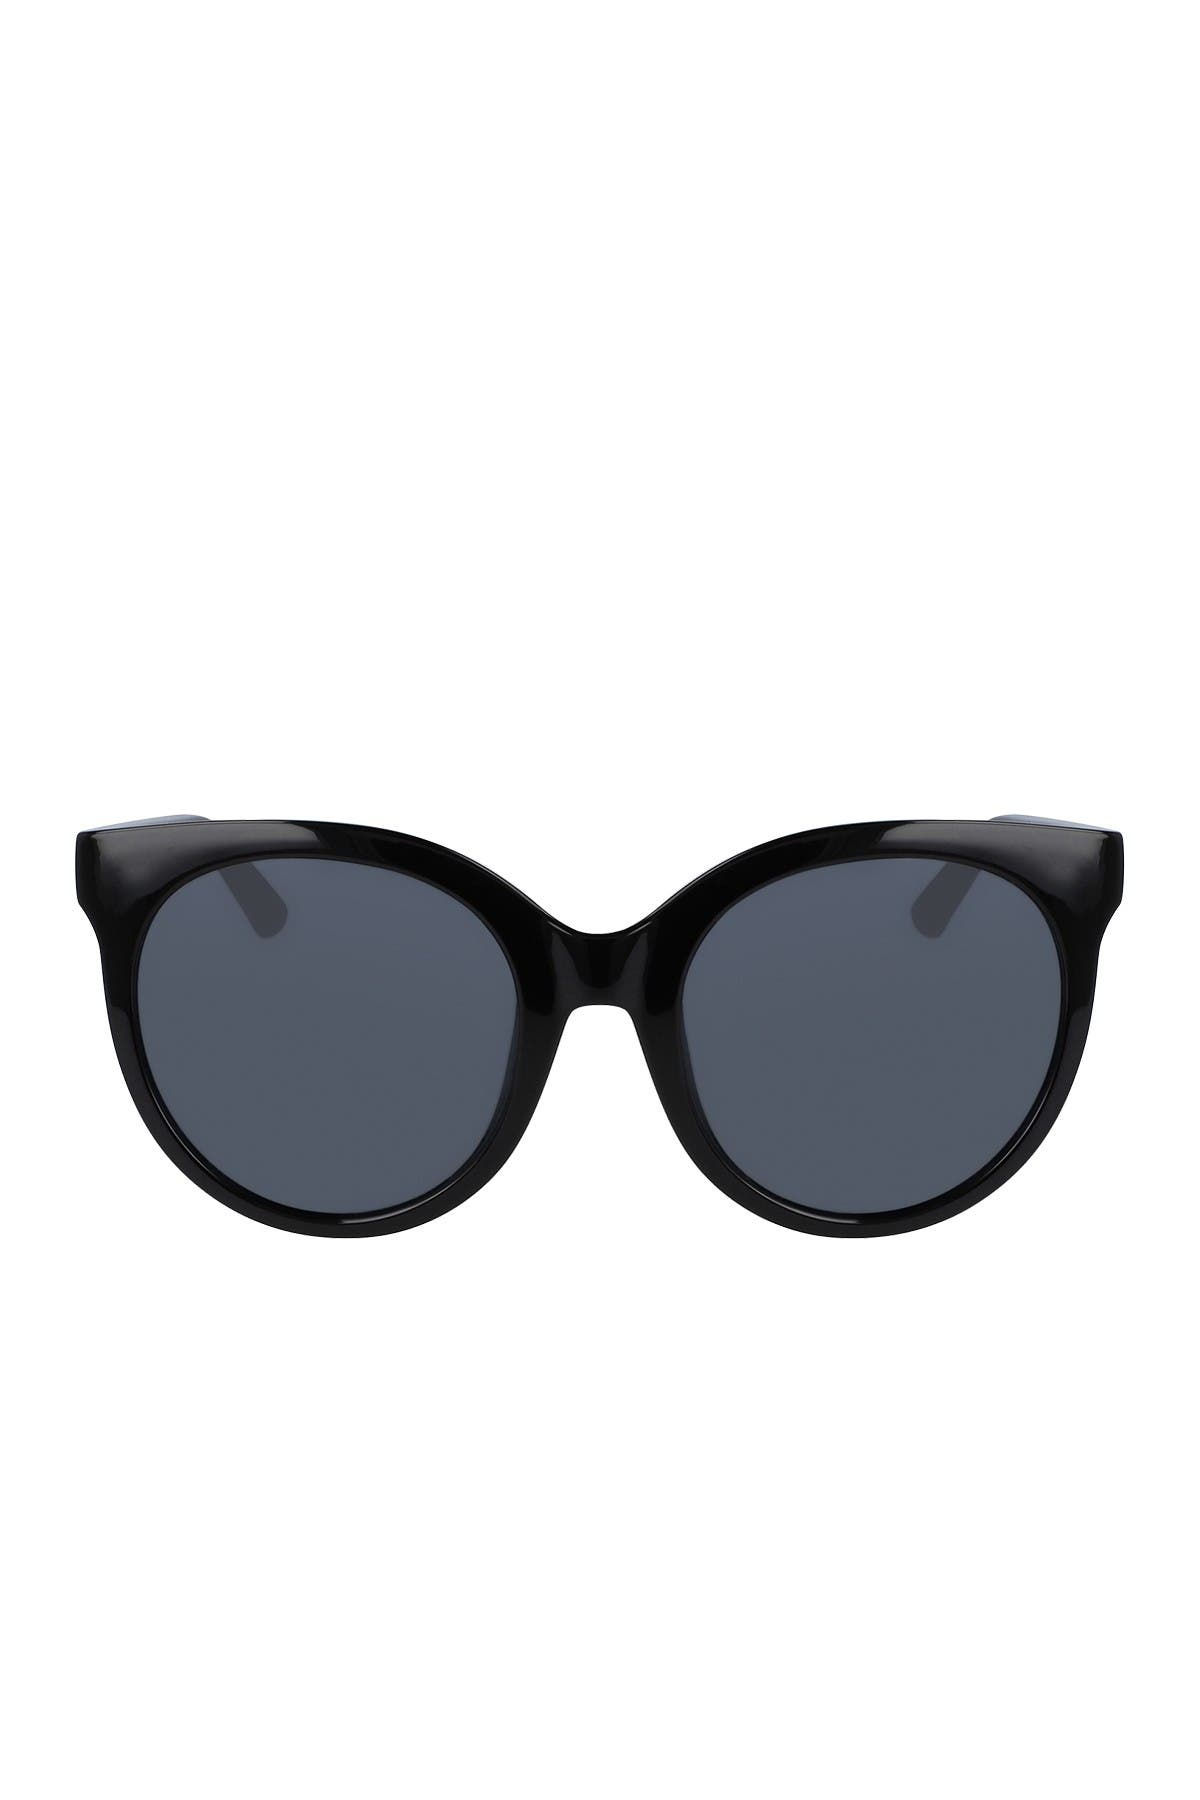 Image of Cole Haan 53mm Oversized Round Sunglasses